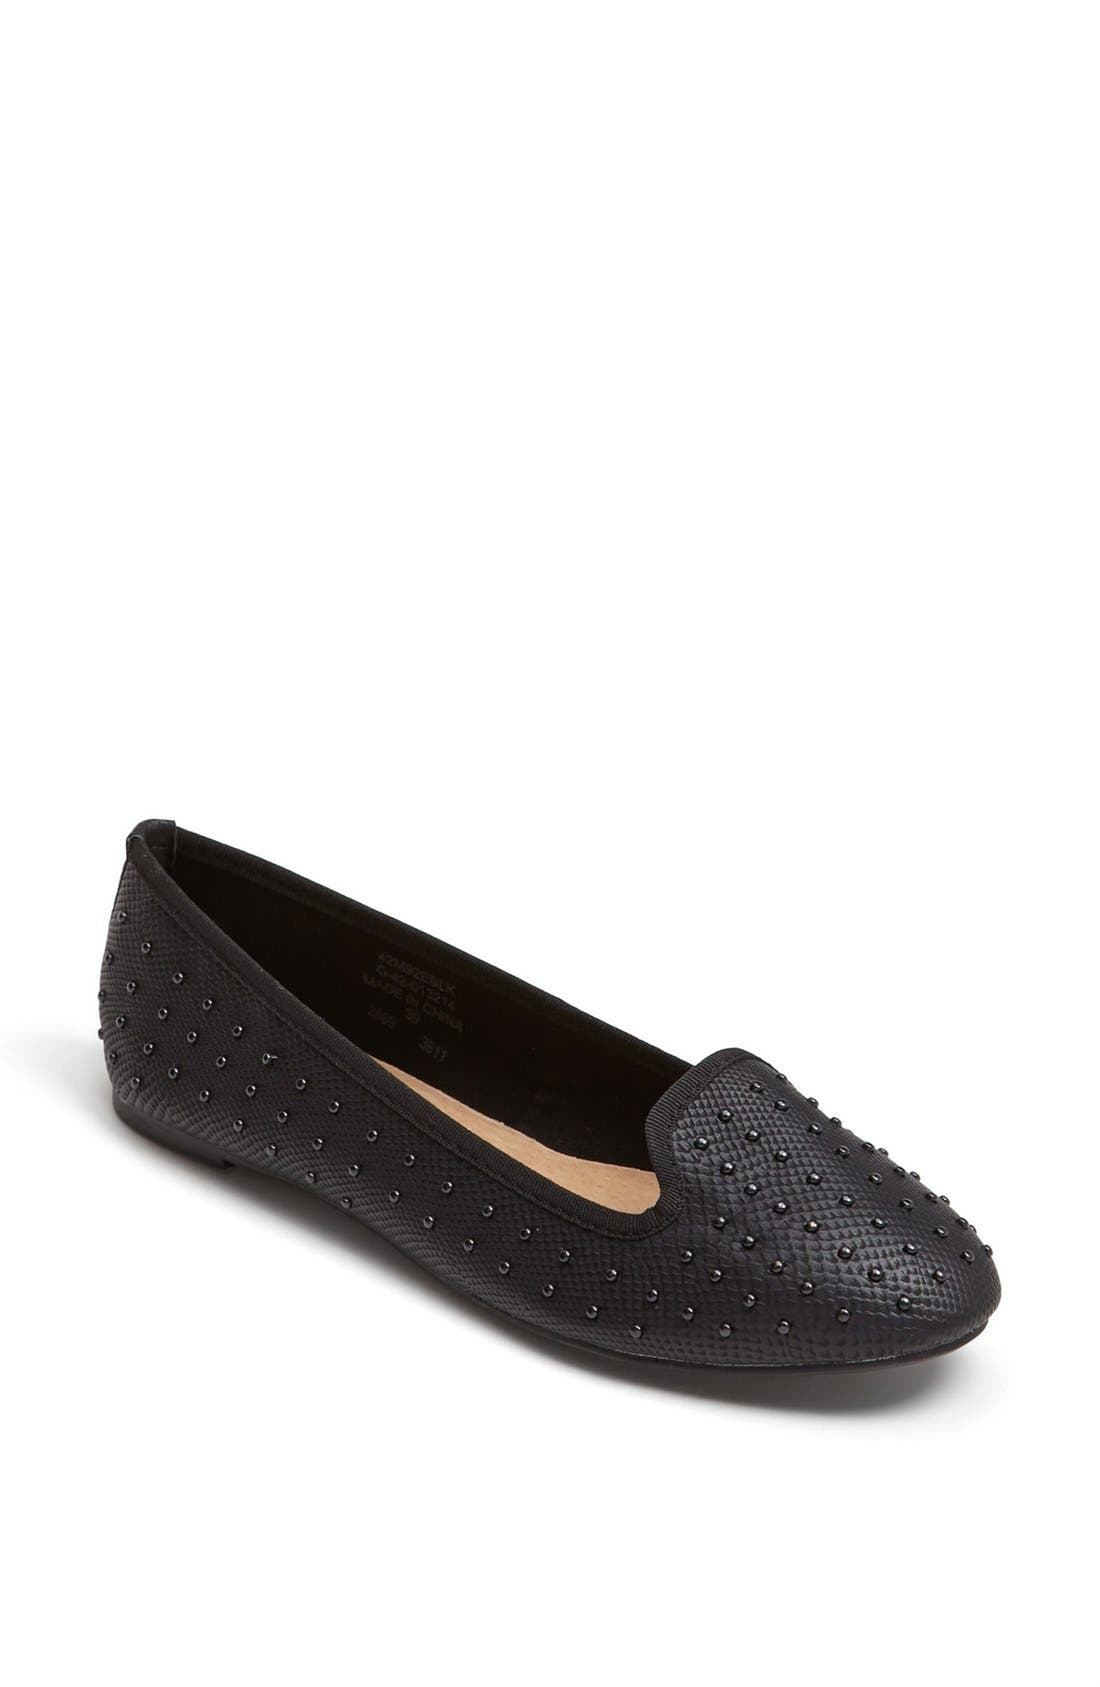 Main Image - Topshop 'Miko' Smoking Slipper